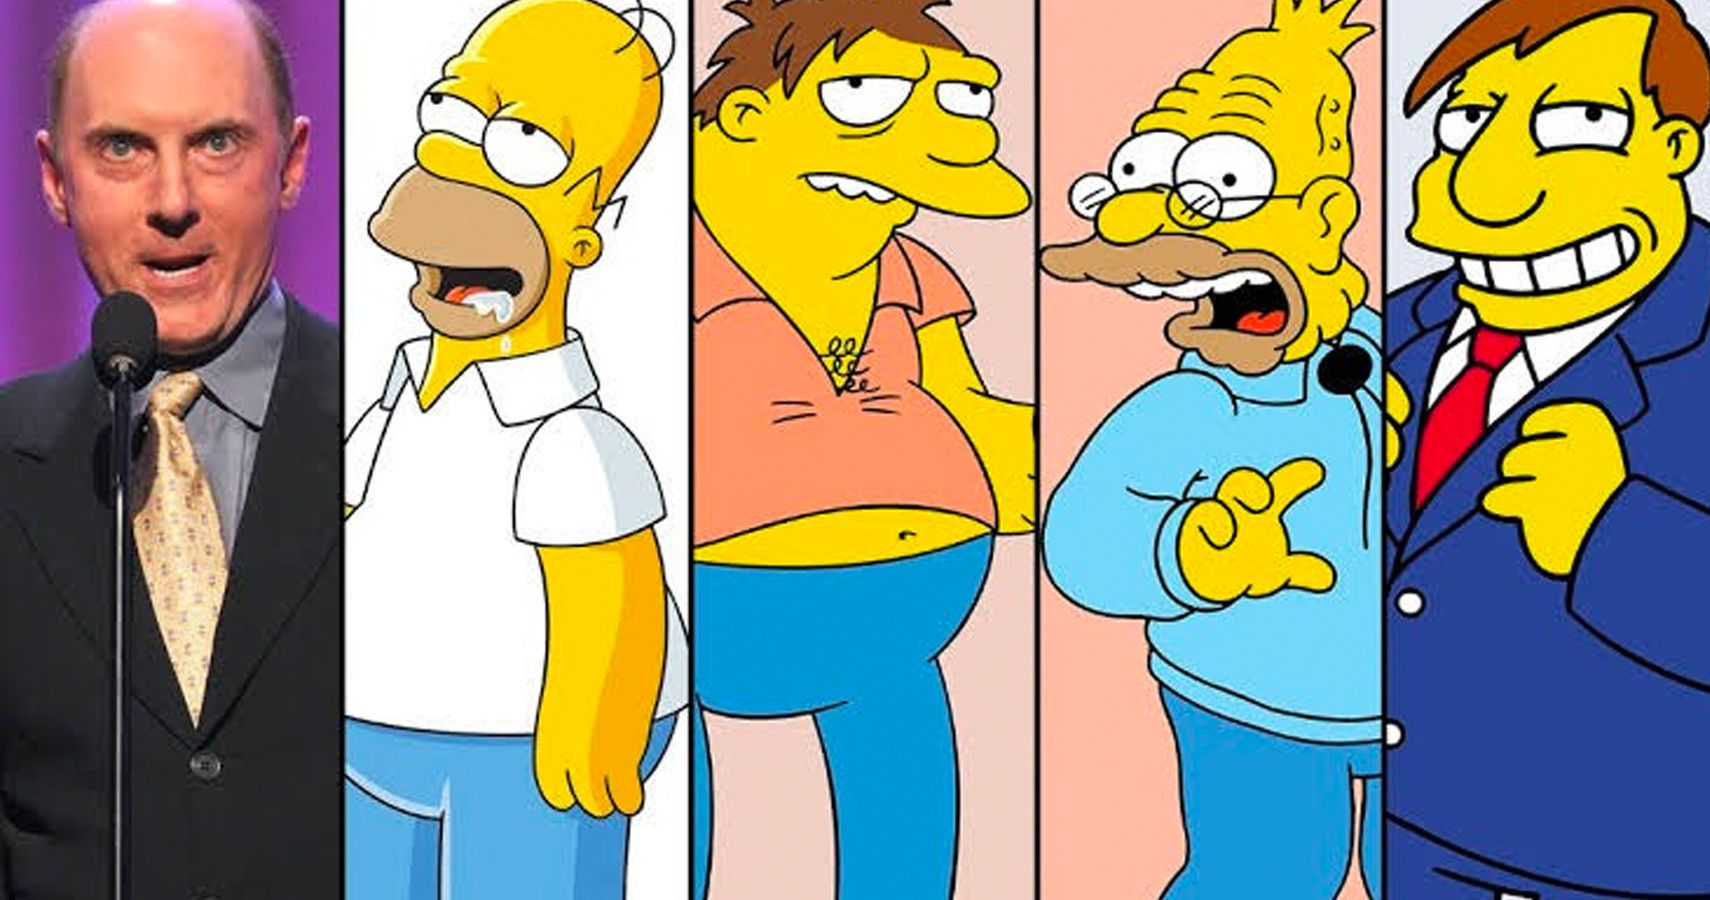 The Simpsons: Every Character Role Played By Dan Castellaneta (The Voice Of Homer)